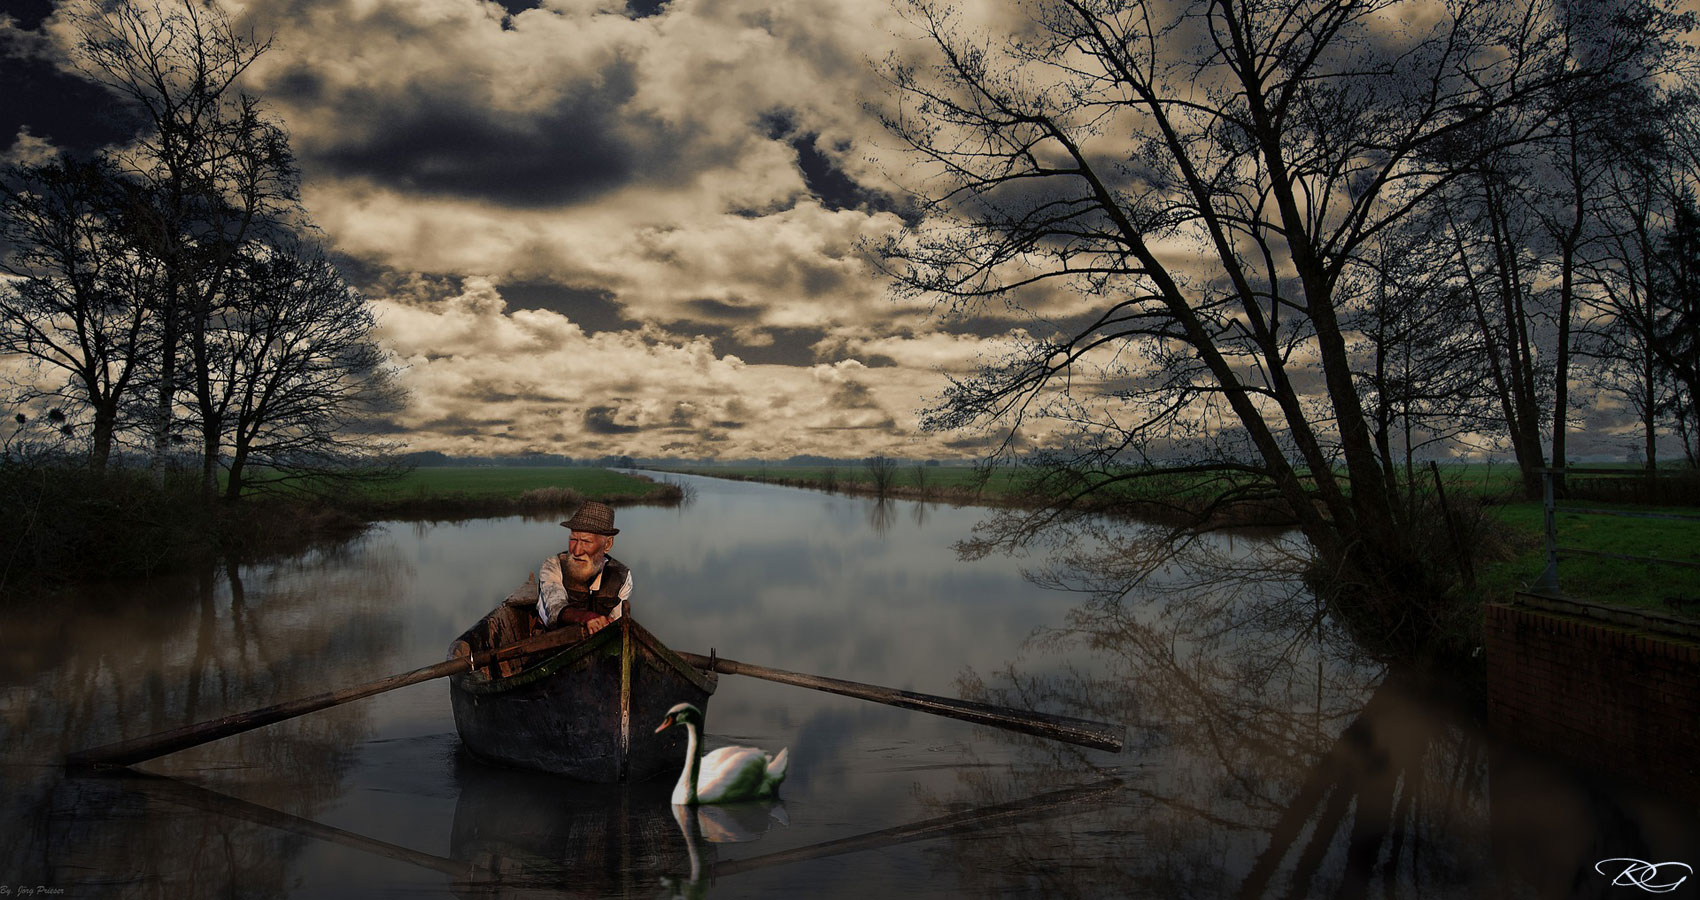 Boatman, a poem written by Henry Bladon at Spillwords.com